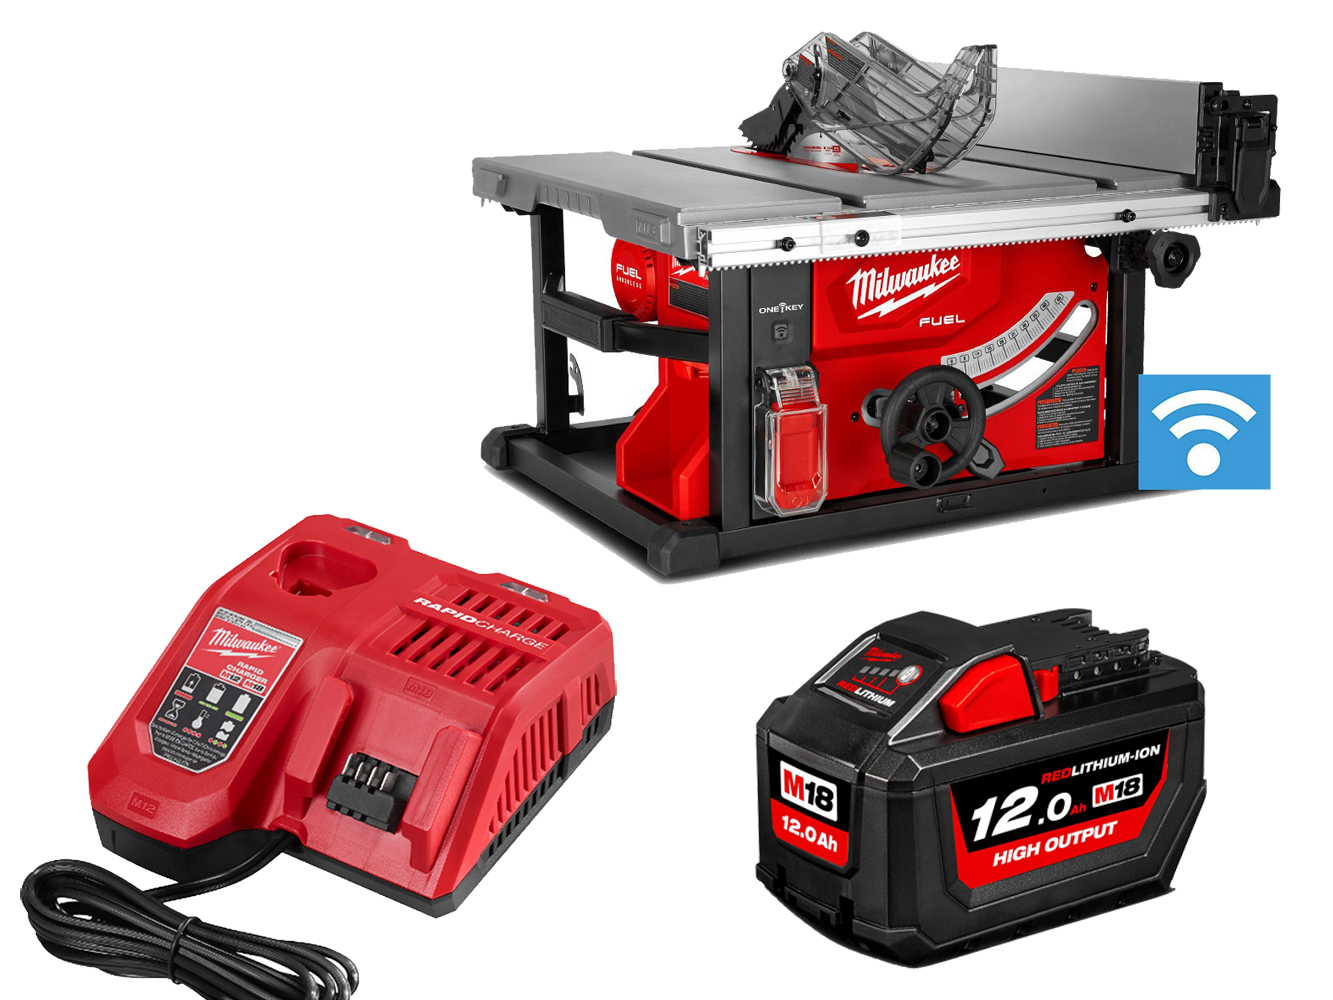 Milwaukee M18FTS210 18V FUEL One-Key Table Saw 210mm - 12.0ah Pack